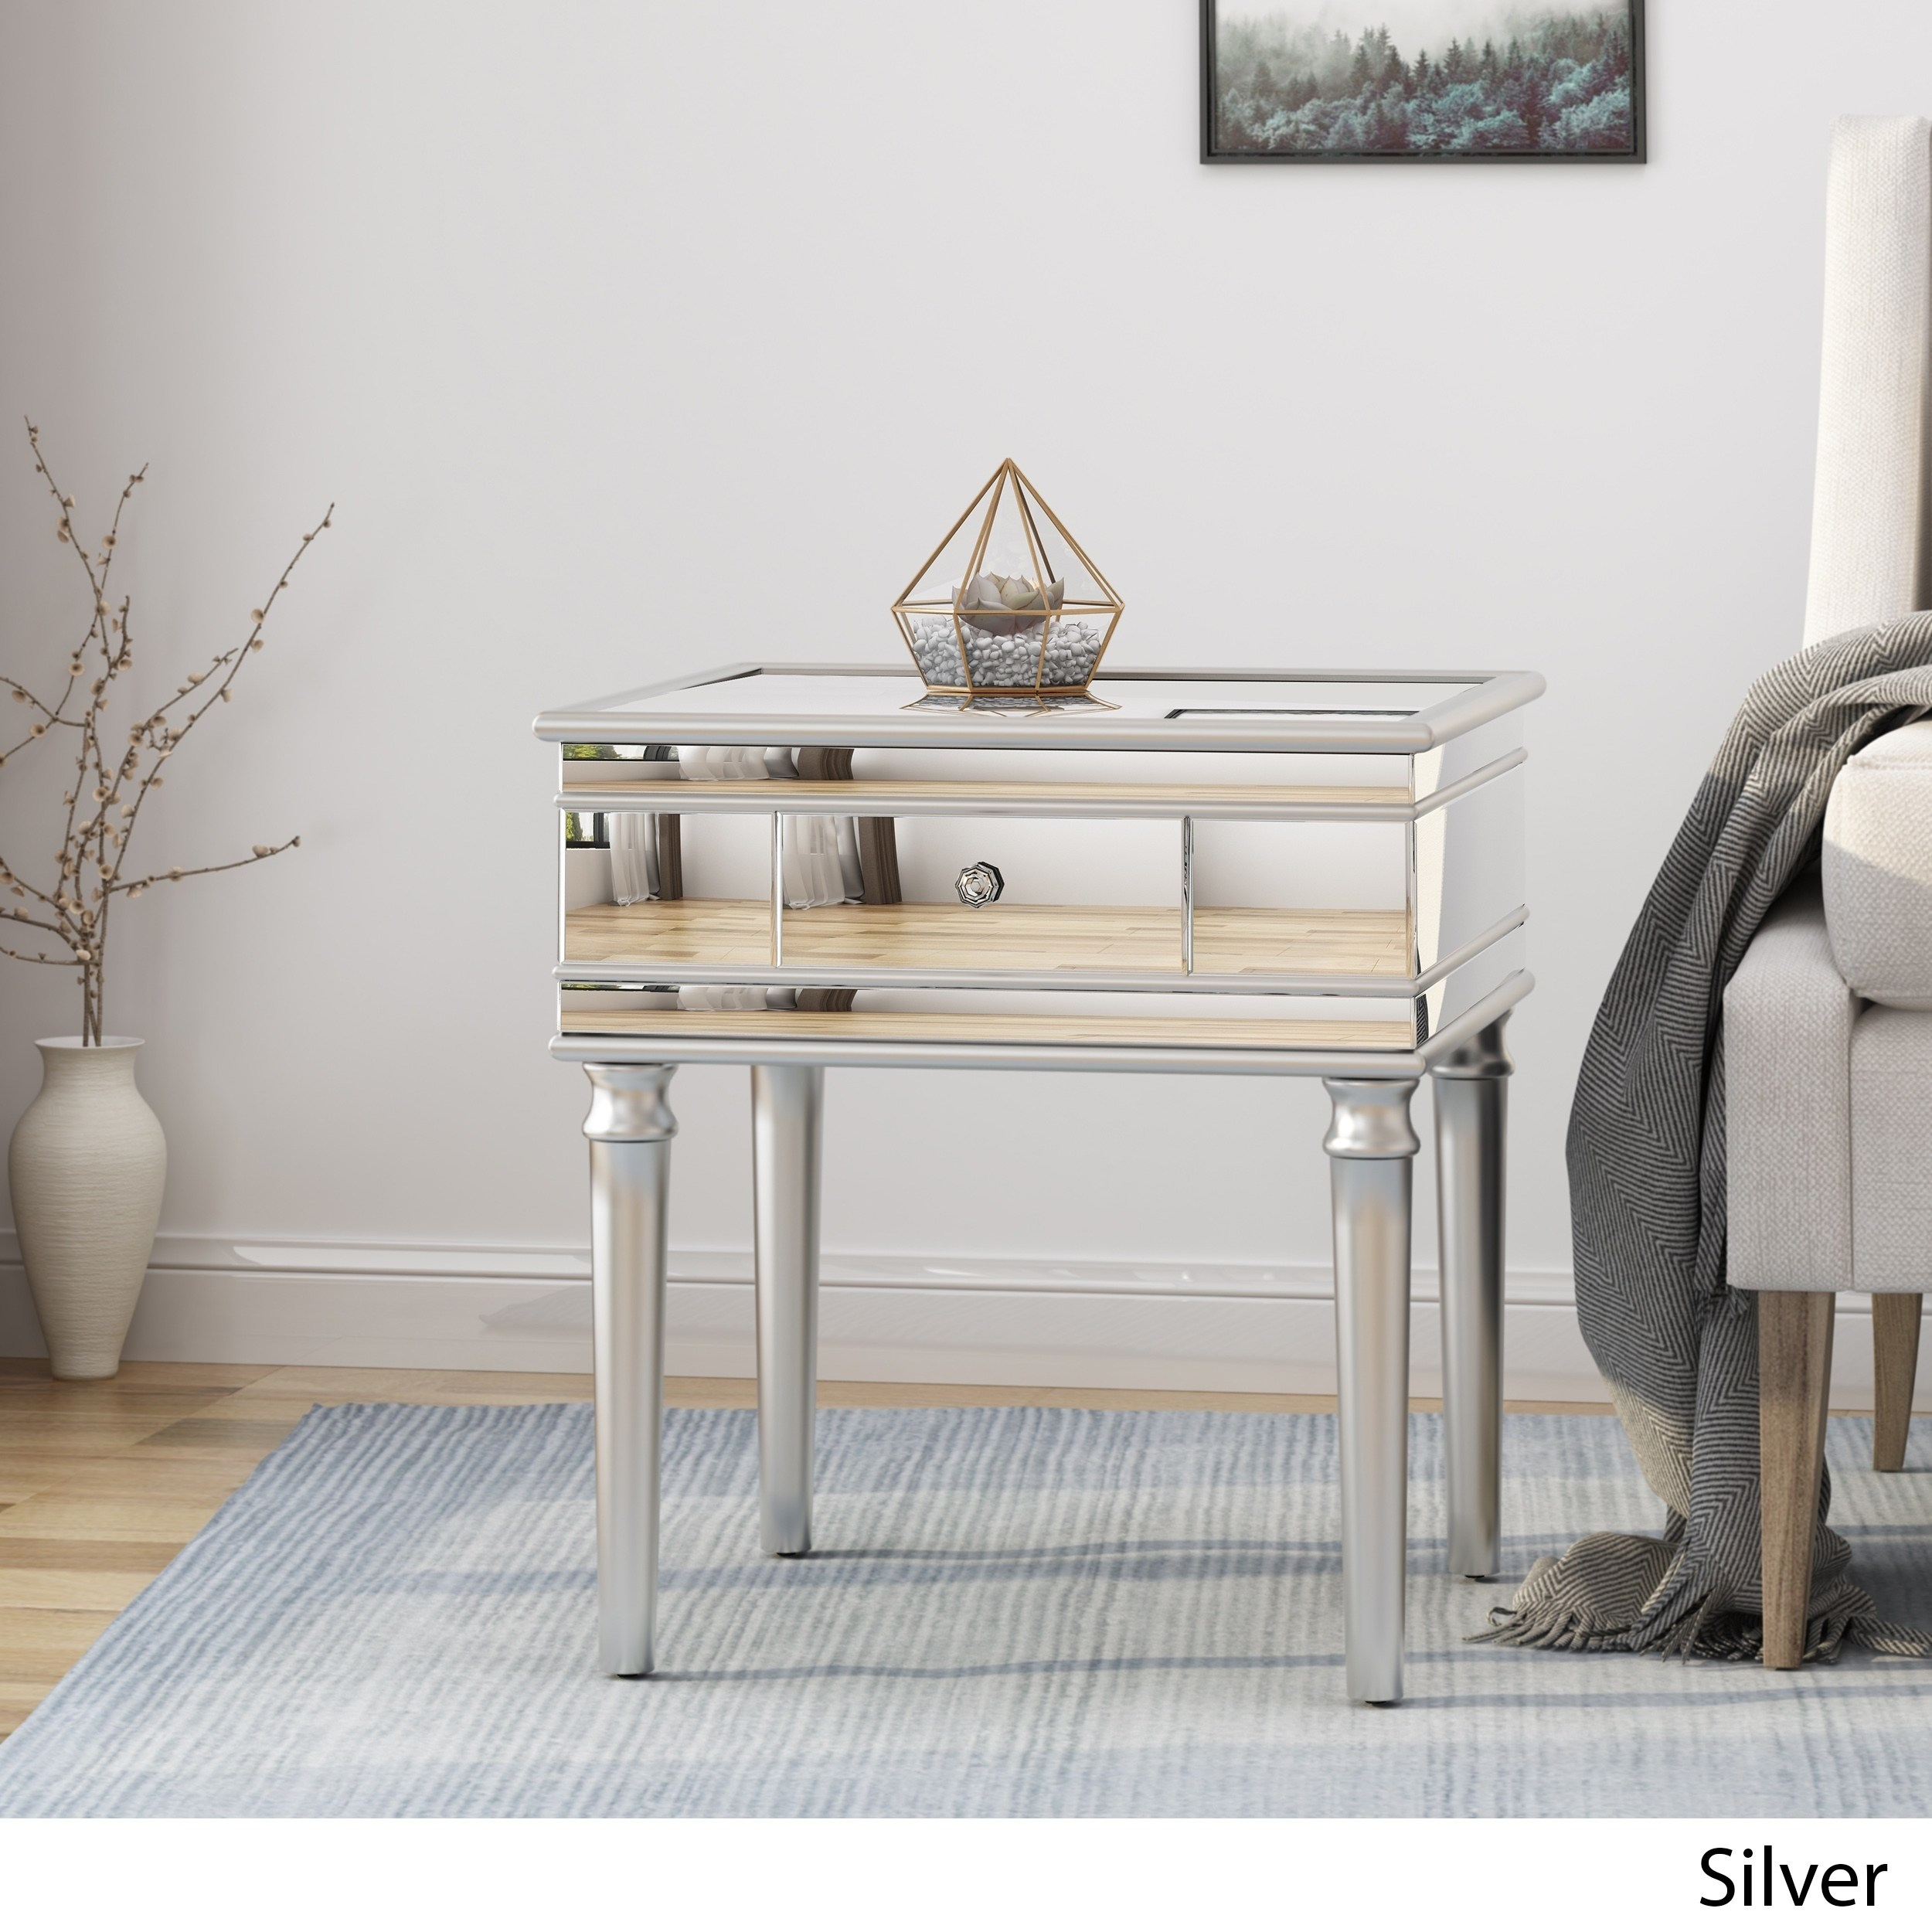 Marinette Modern Tempered Glass Mirrored Accent Table With Drawer Christopher Knight Home Silver Gray Free Shipping